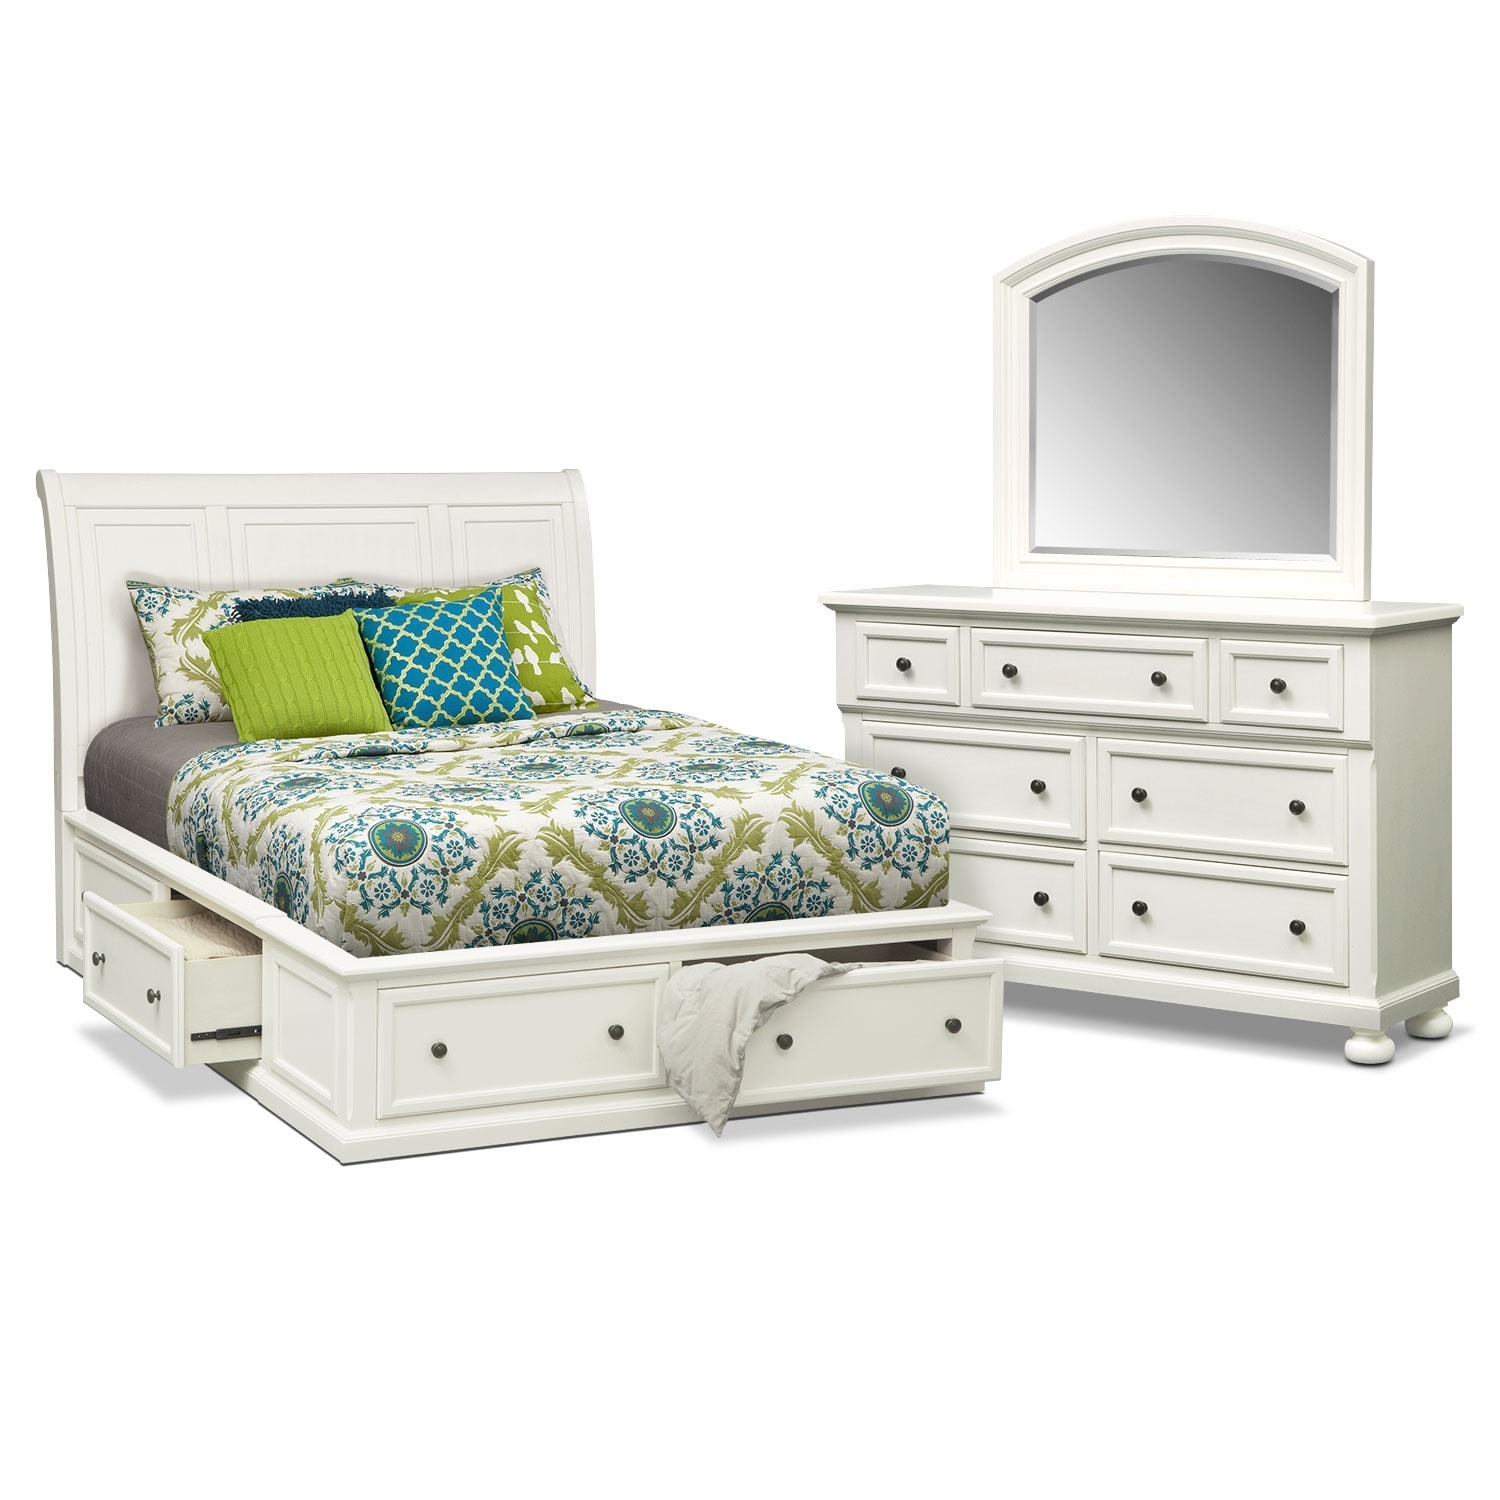 hanover 5 piece queen storage bedroom set white value On white bedroom set with storage